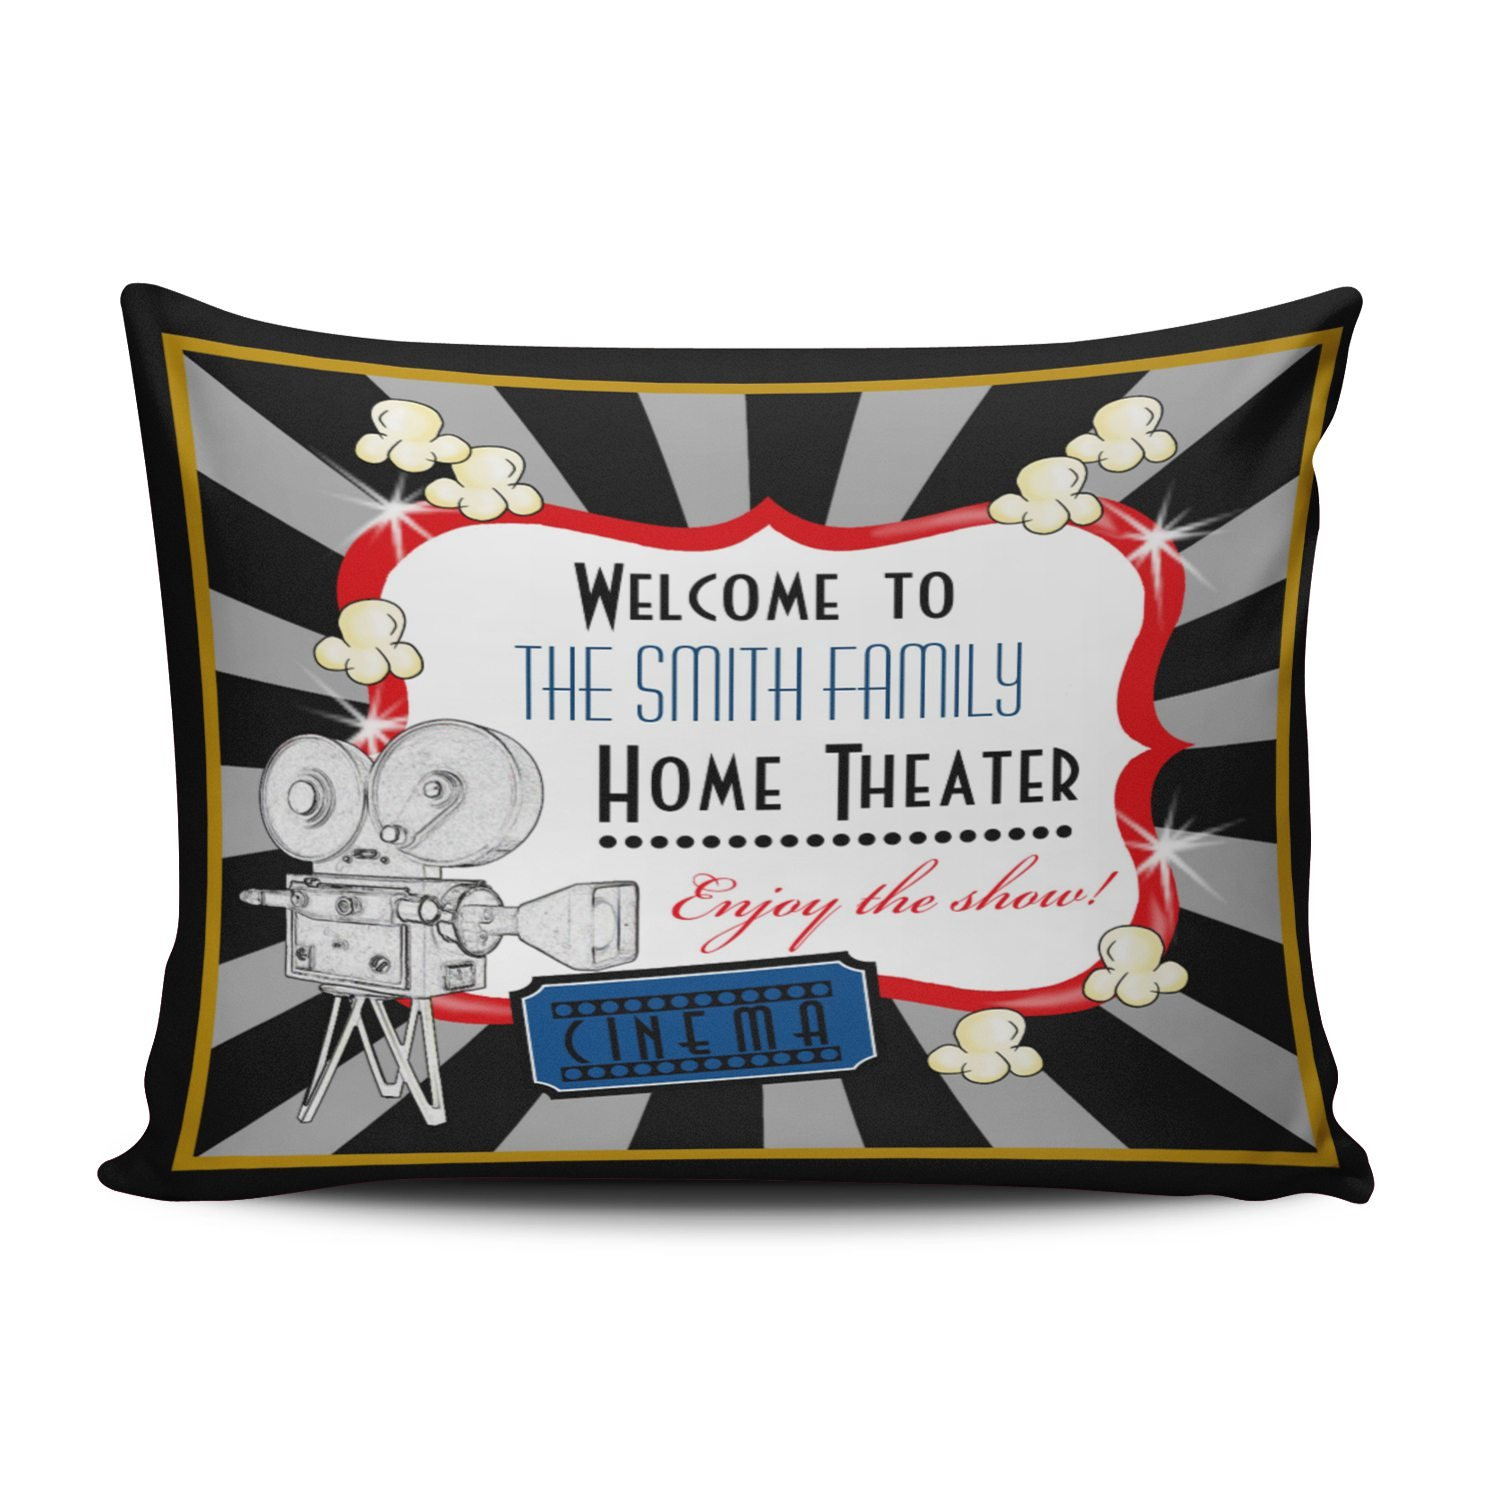 KEIBIKE Personalized Movie Theater Cinema Rectangle Decorative Pillowcases Unique Zippered Standard Pillow Covers Cases 20x26 Inches One Sided